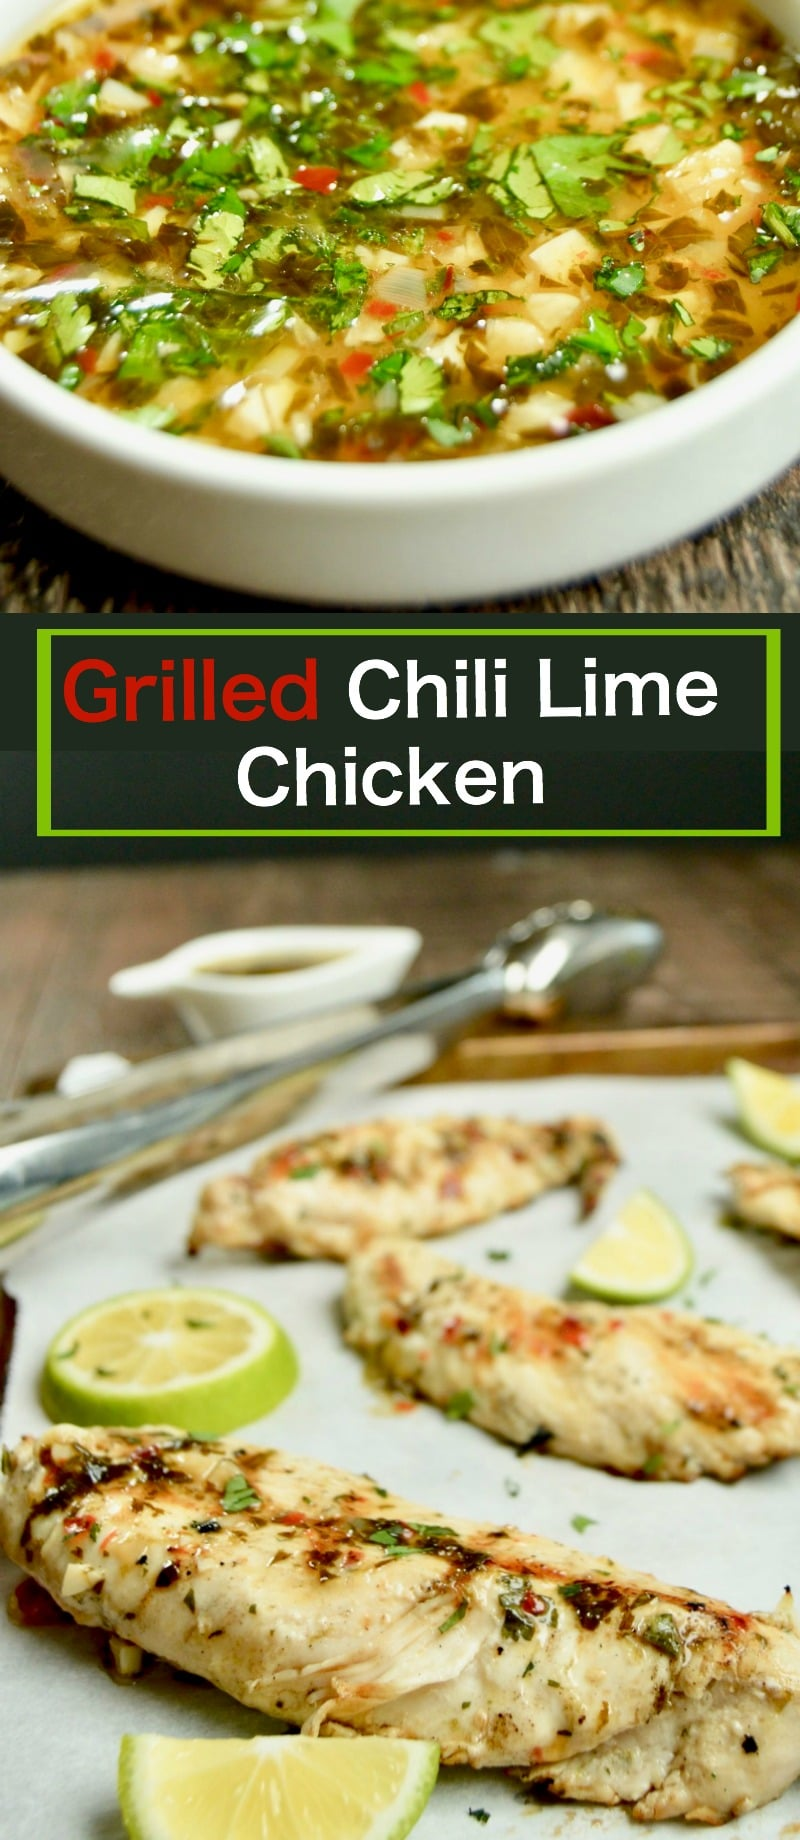 Grilled Chili Lime Chicken is full of flavor AND still healthy, marinated overnight, grilled to tender juicy perfection. Excellent for summer entertaining!